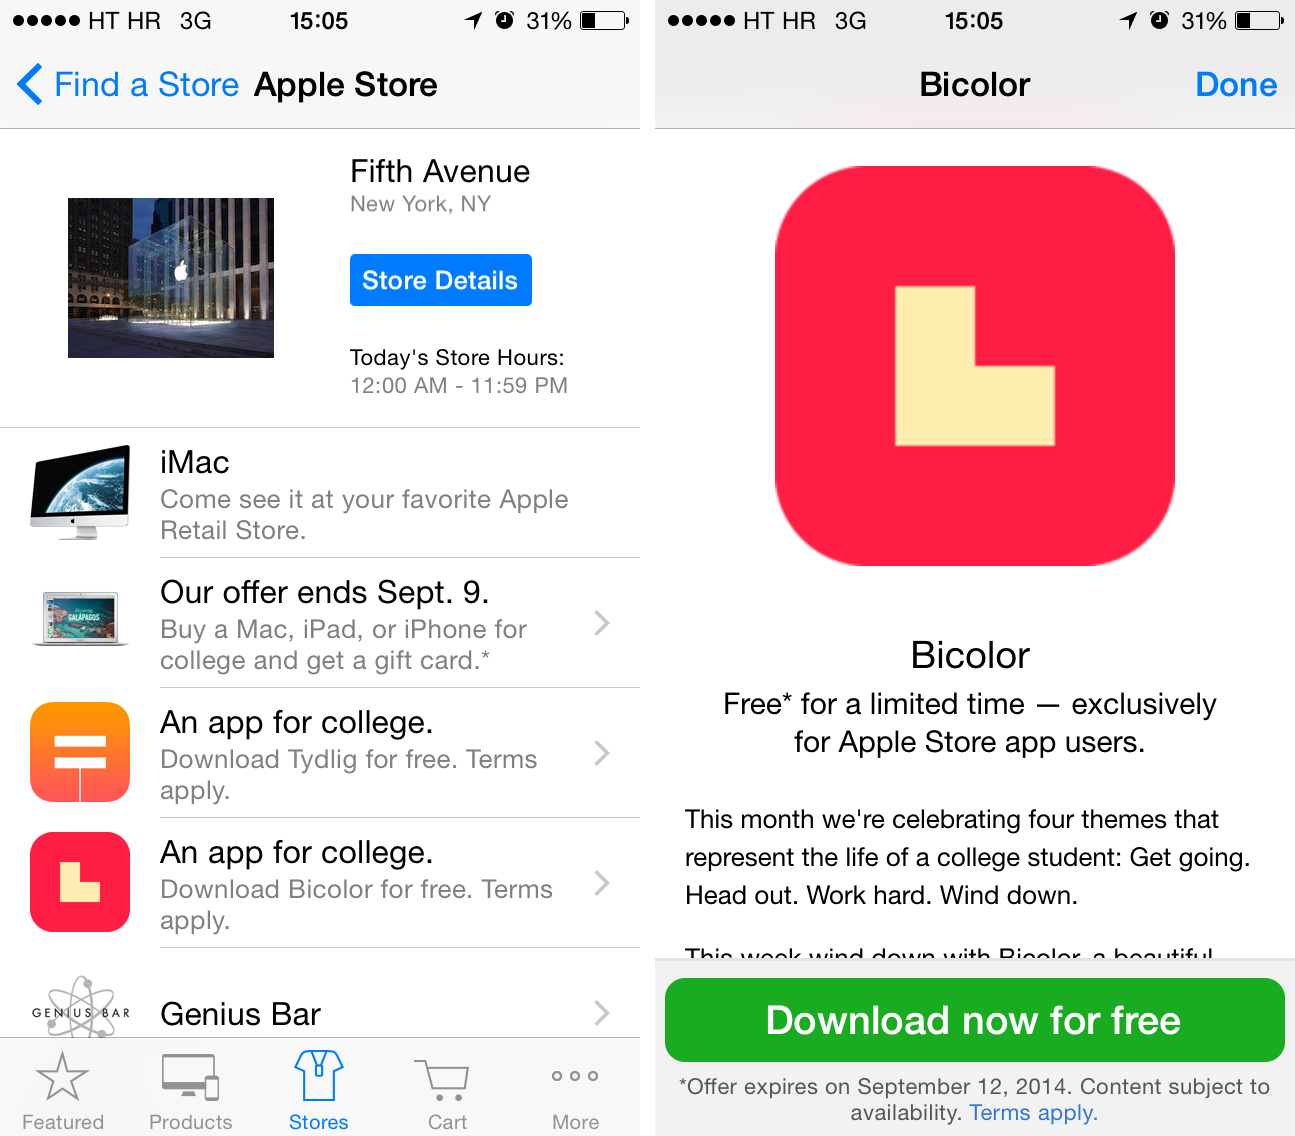 Apple Store promo (Bicolor free 001)